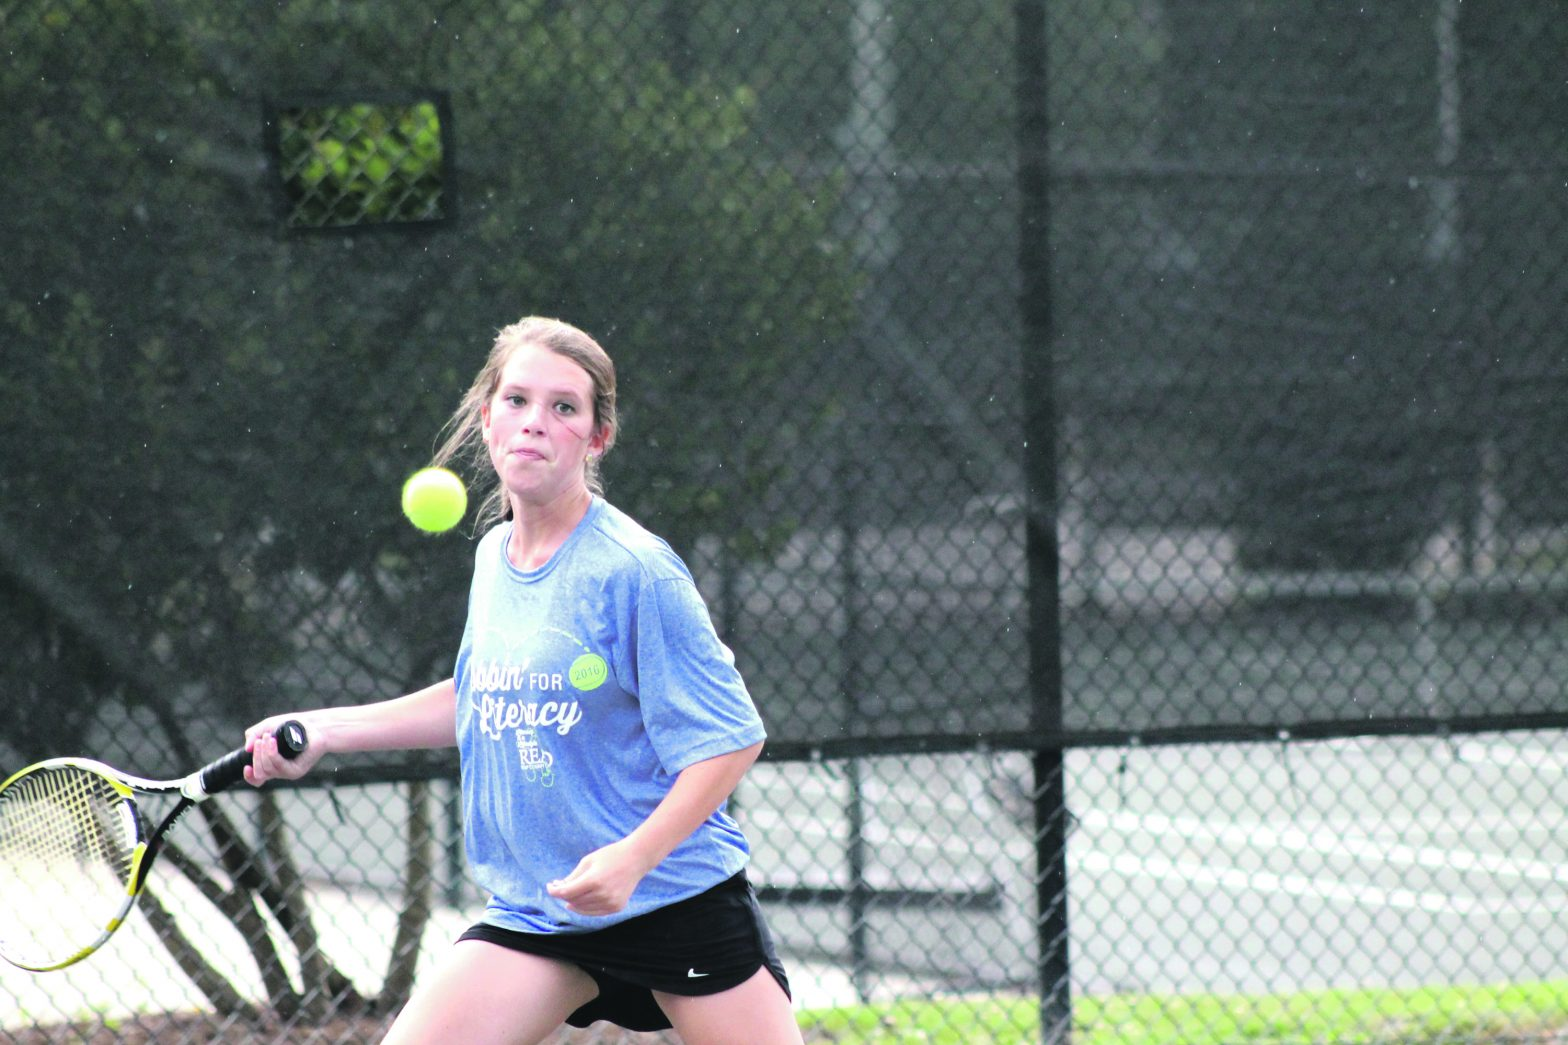 Cadenhead Finishes What  She Starts, 15 Year Old  Wins Girls Doubles Mixer